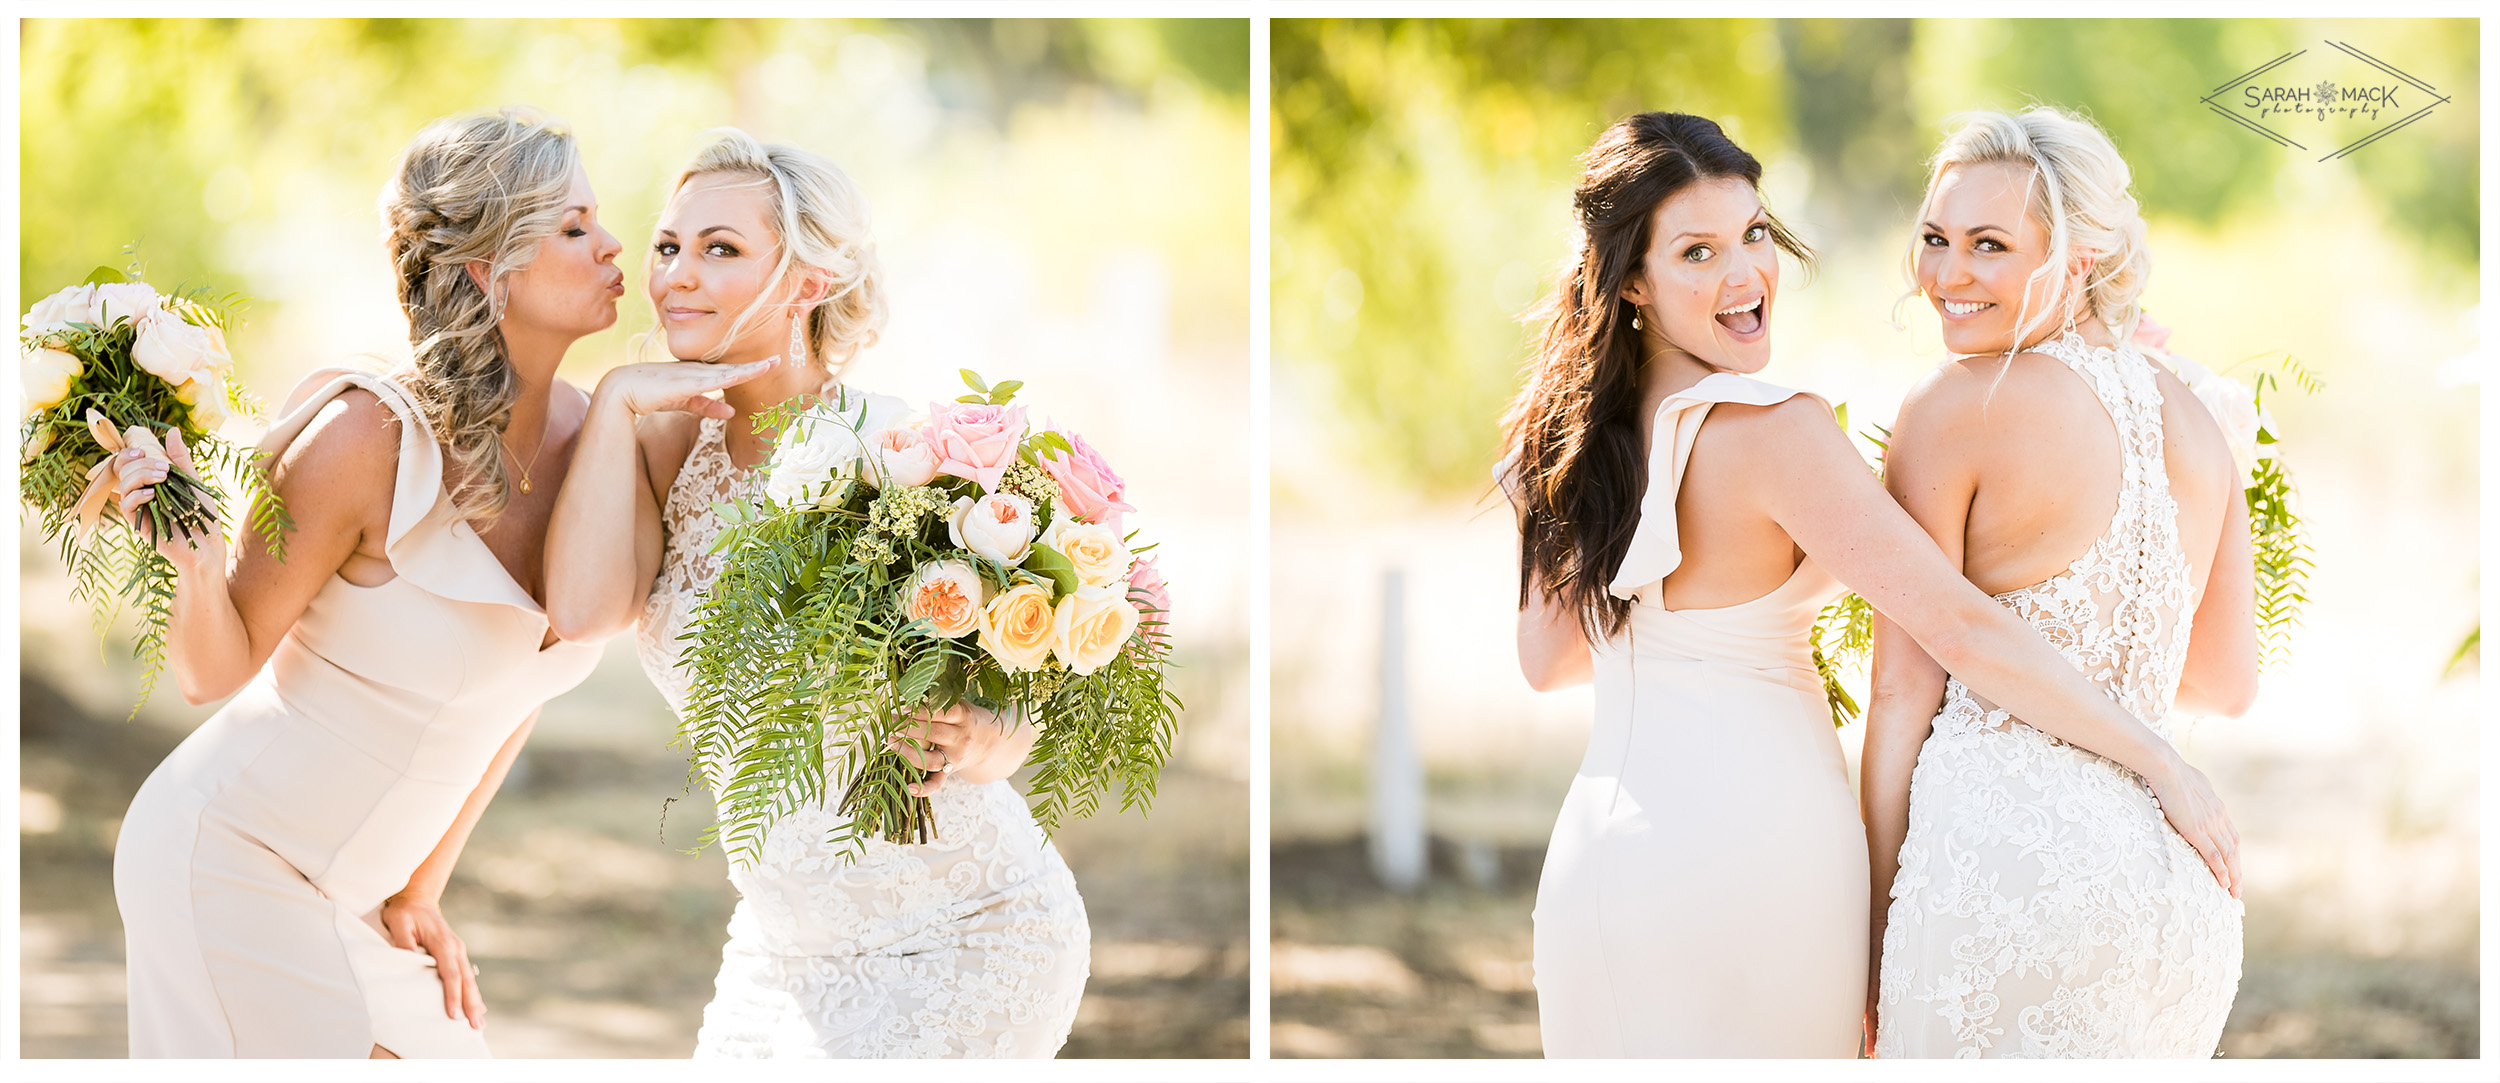 MA-Chandler-Ranch-Paso-Robles-Wedding-Photography-57.jpg